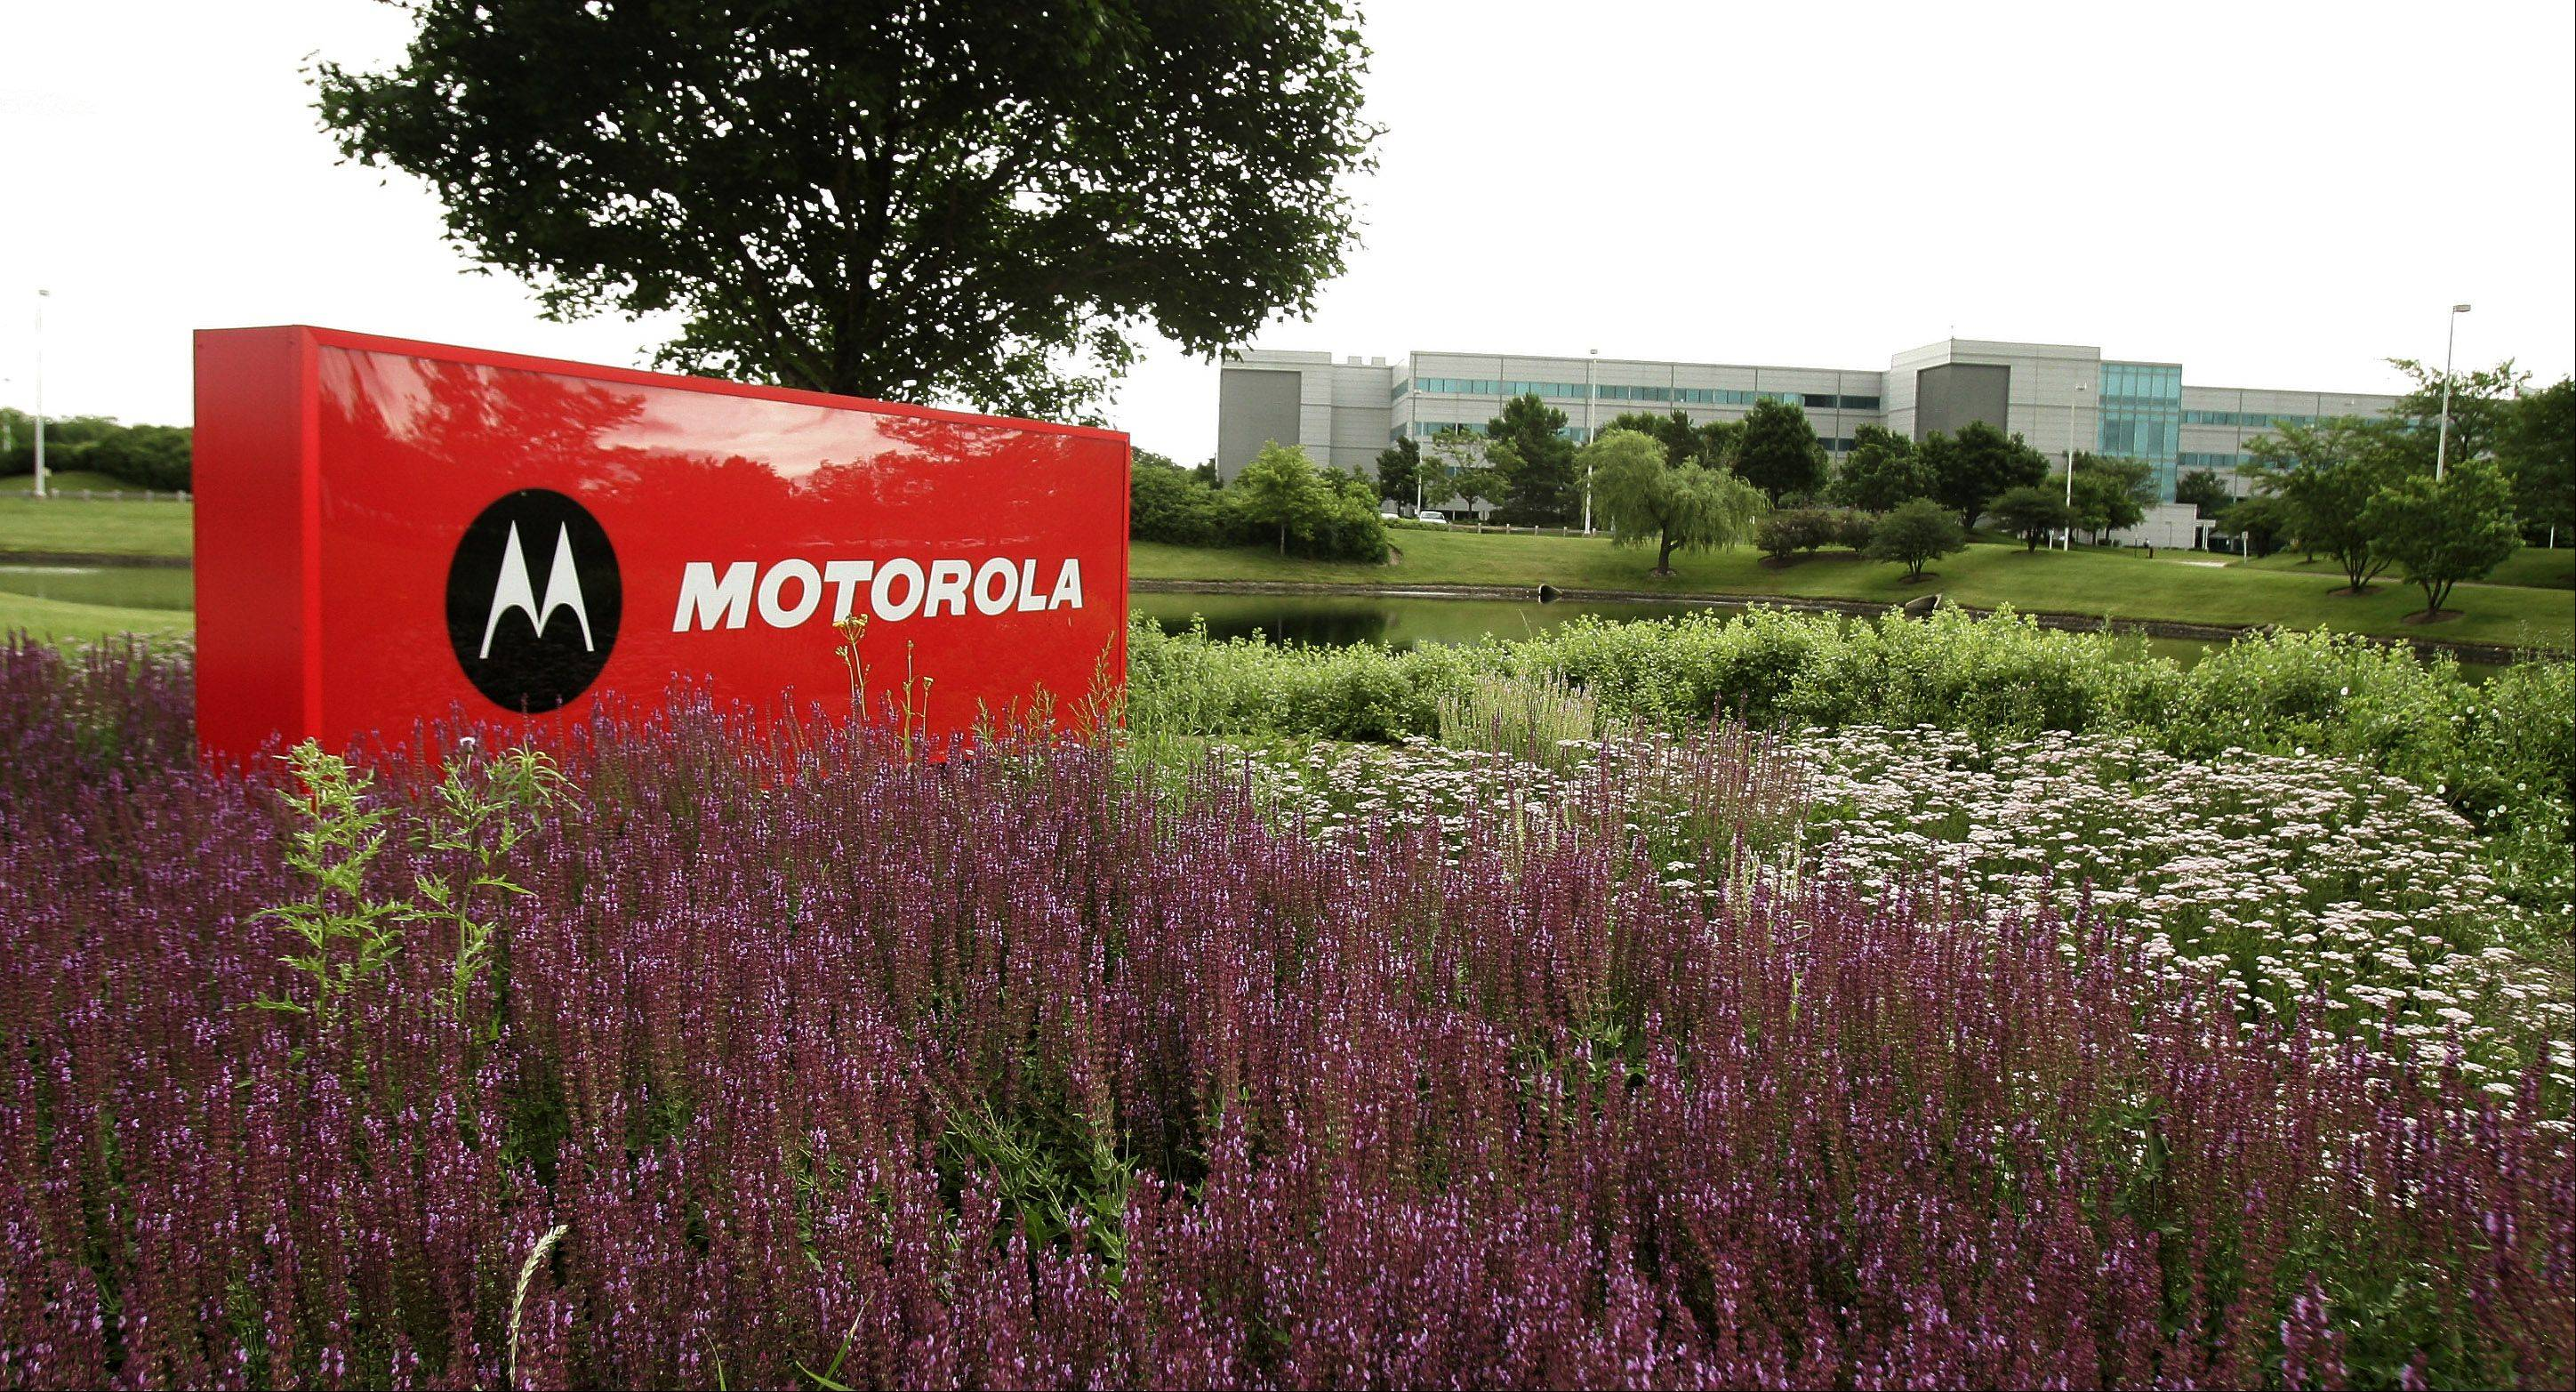 2,000 employees will relocate from the Motorola Mobility campus in Libertyville to the Merchandise Mart during the first quarter of 2014.